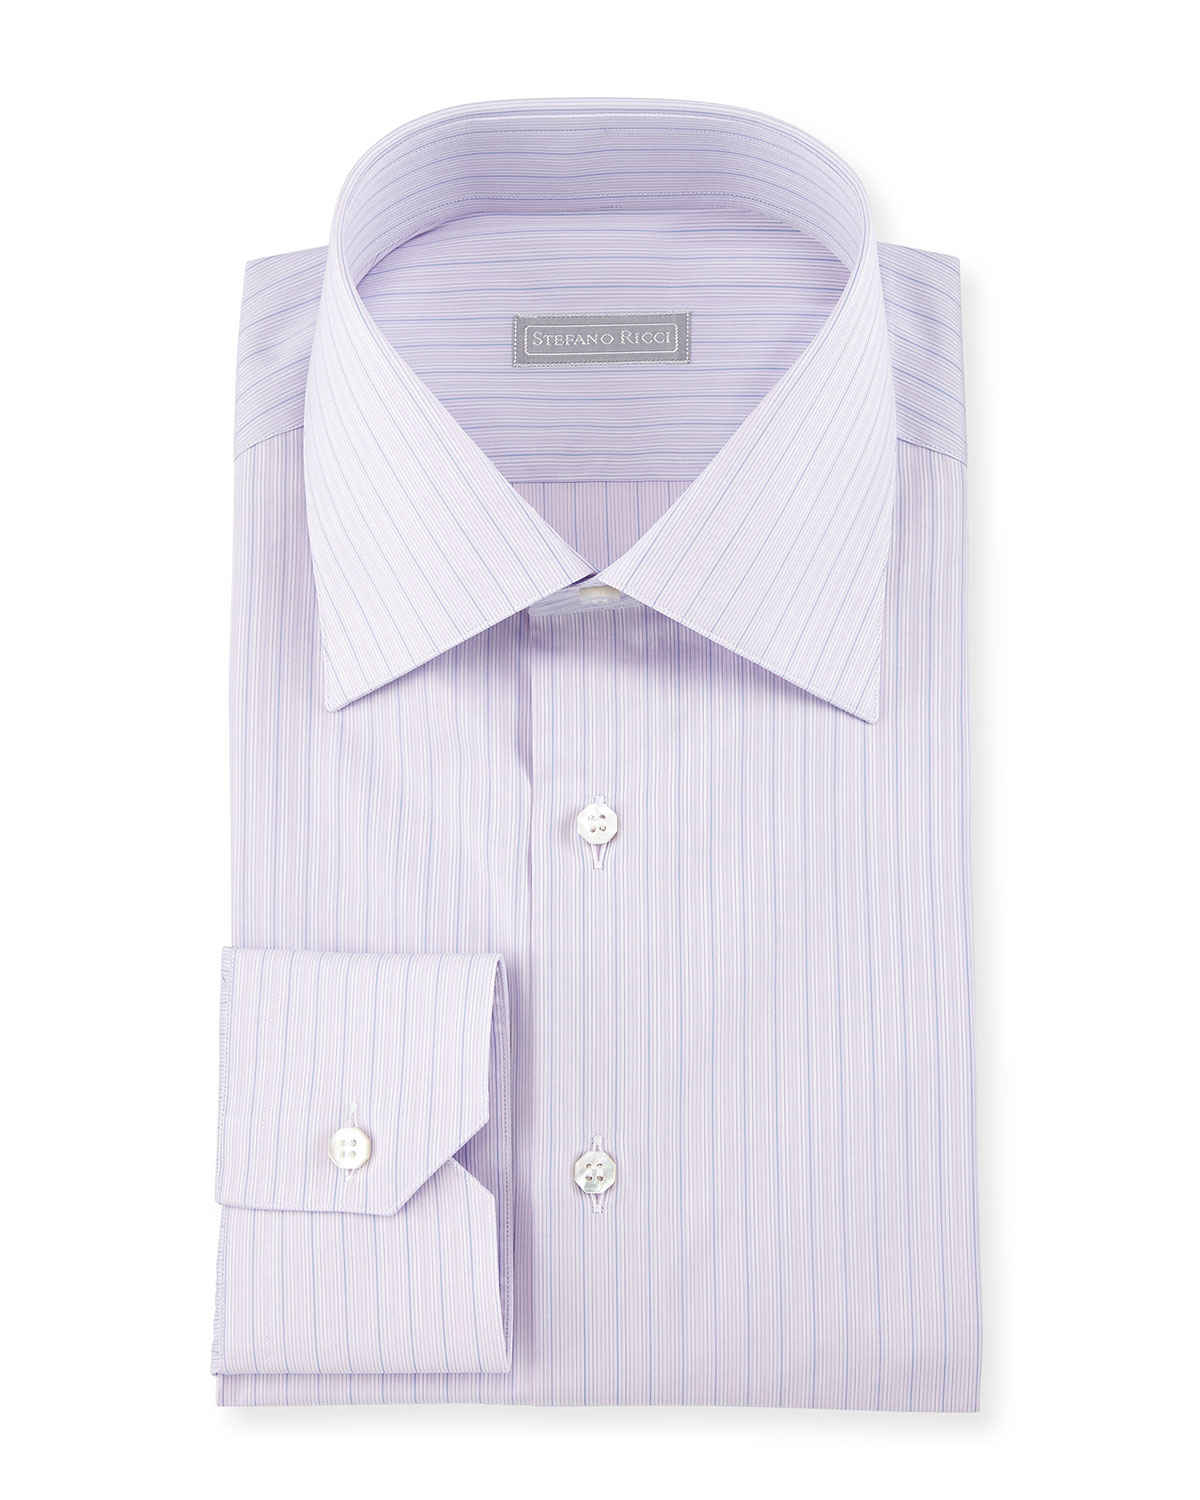 Stefano ricci thin striped woven dress shirt in purple for for Purple striped dress shirt